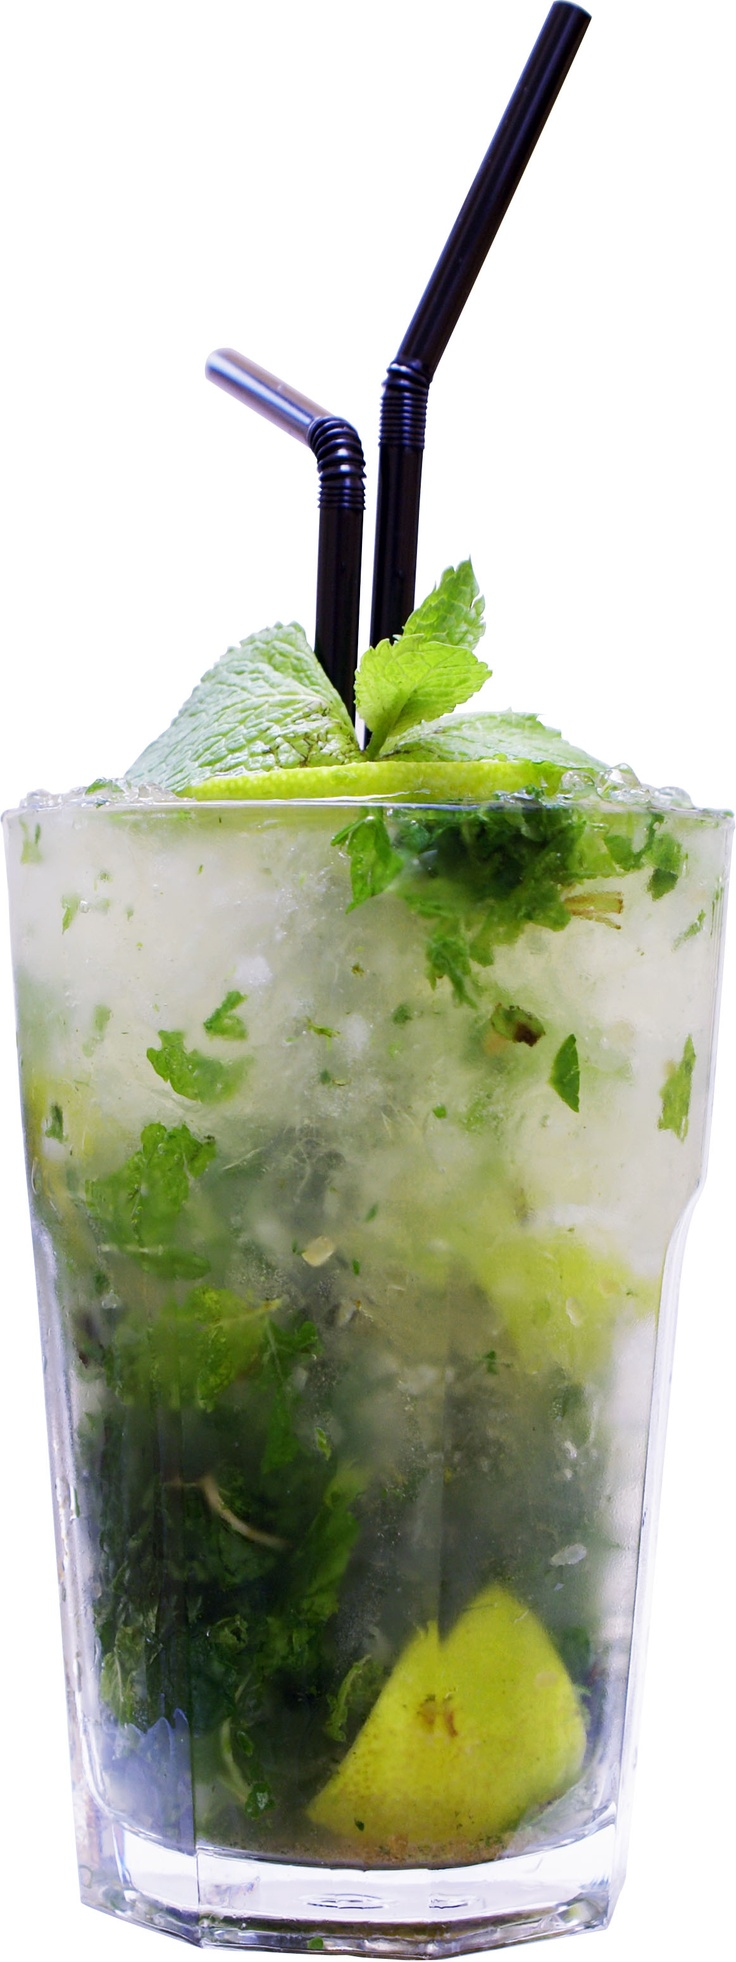 Mohito- my new favorite drink